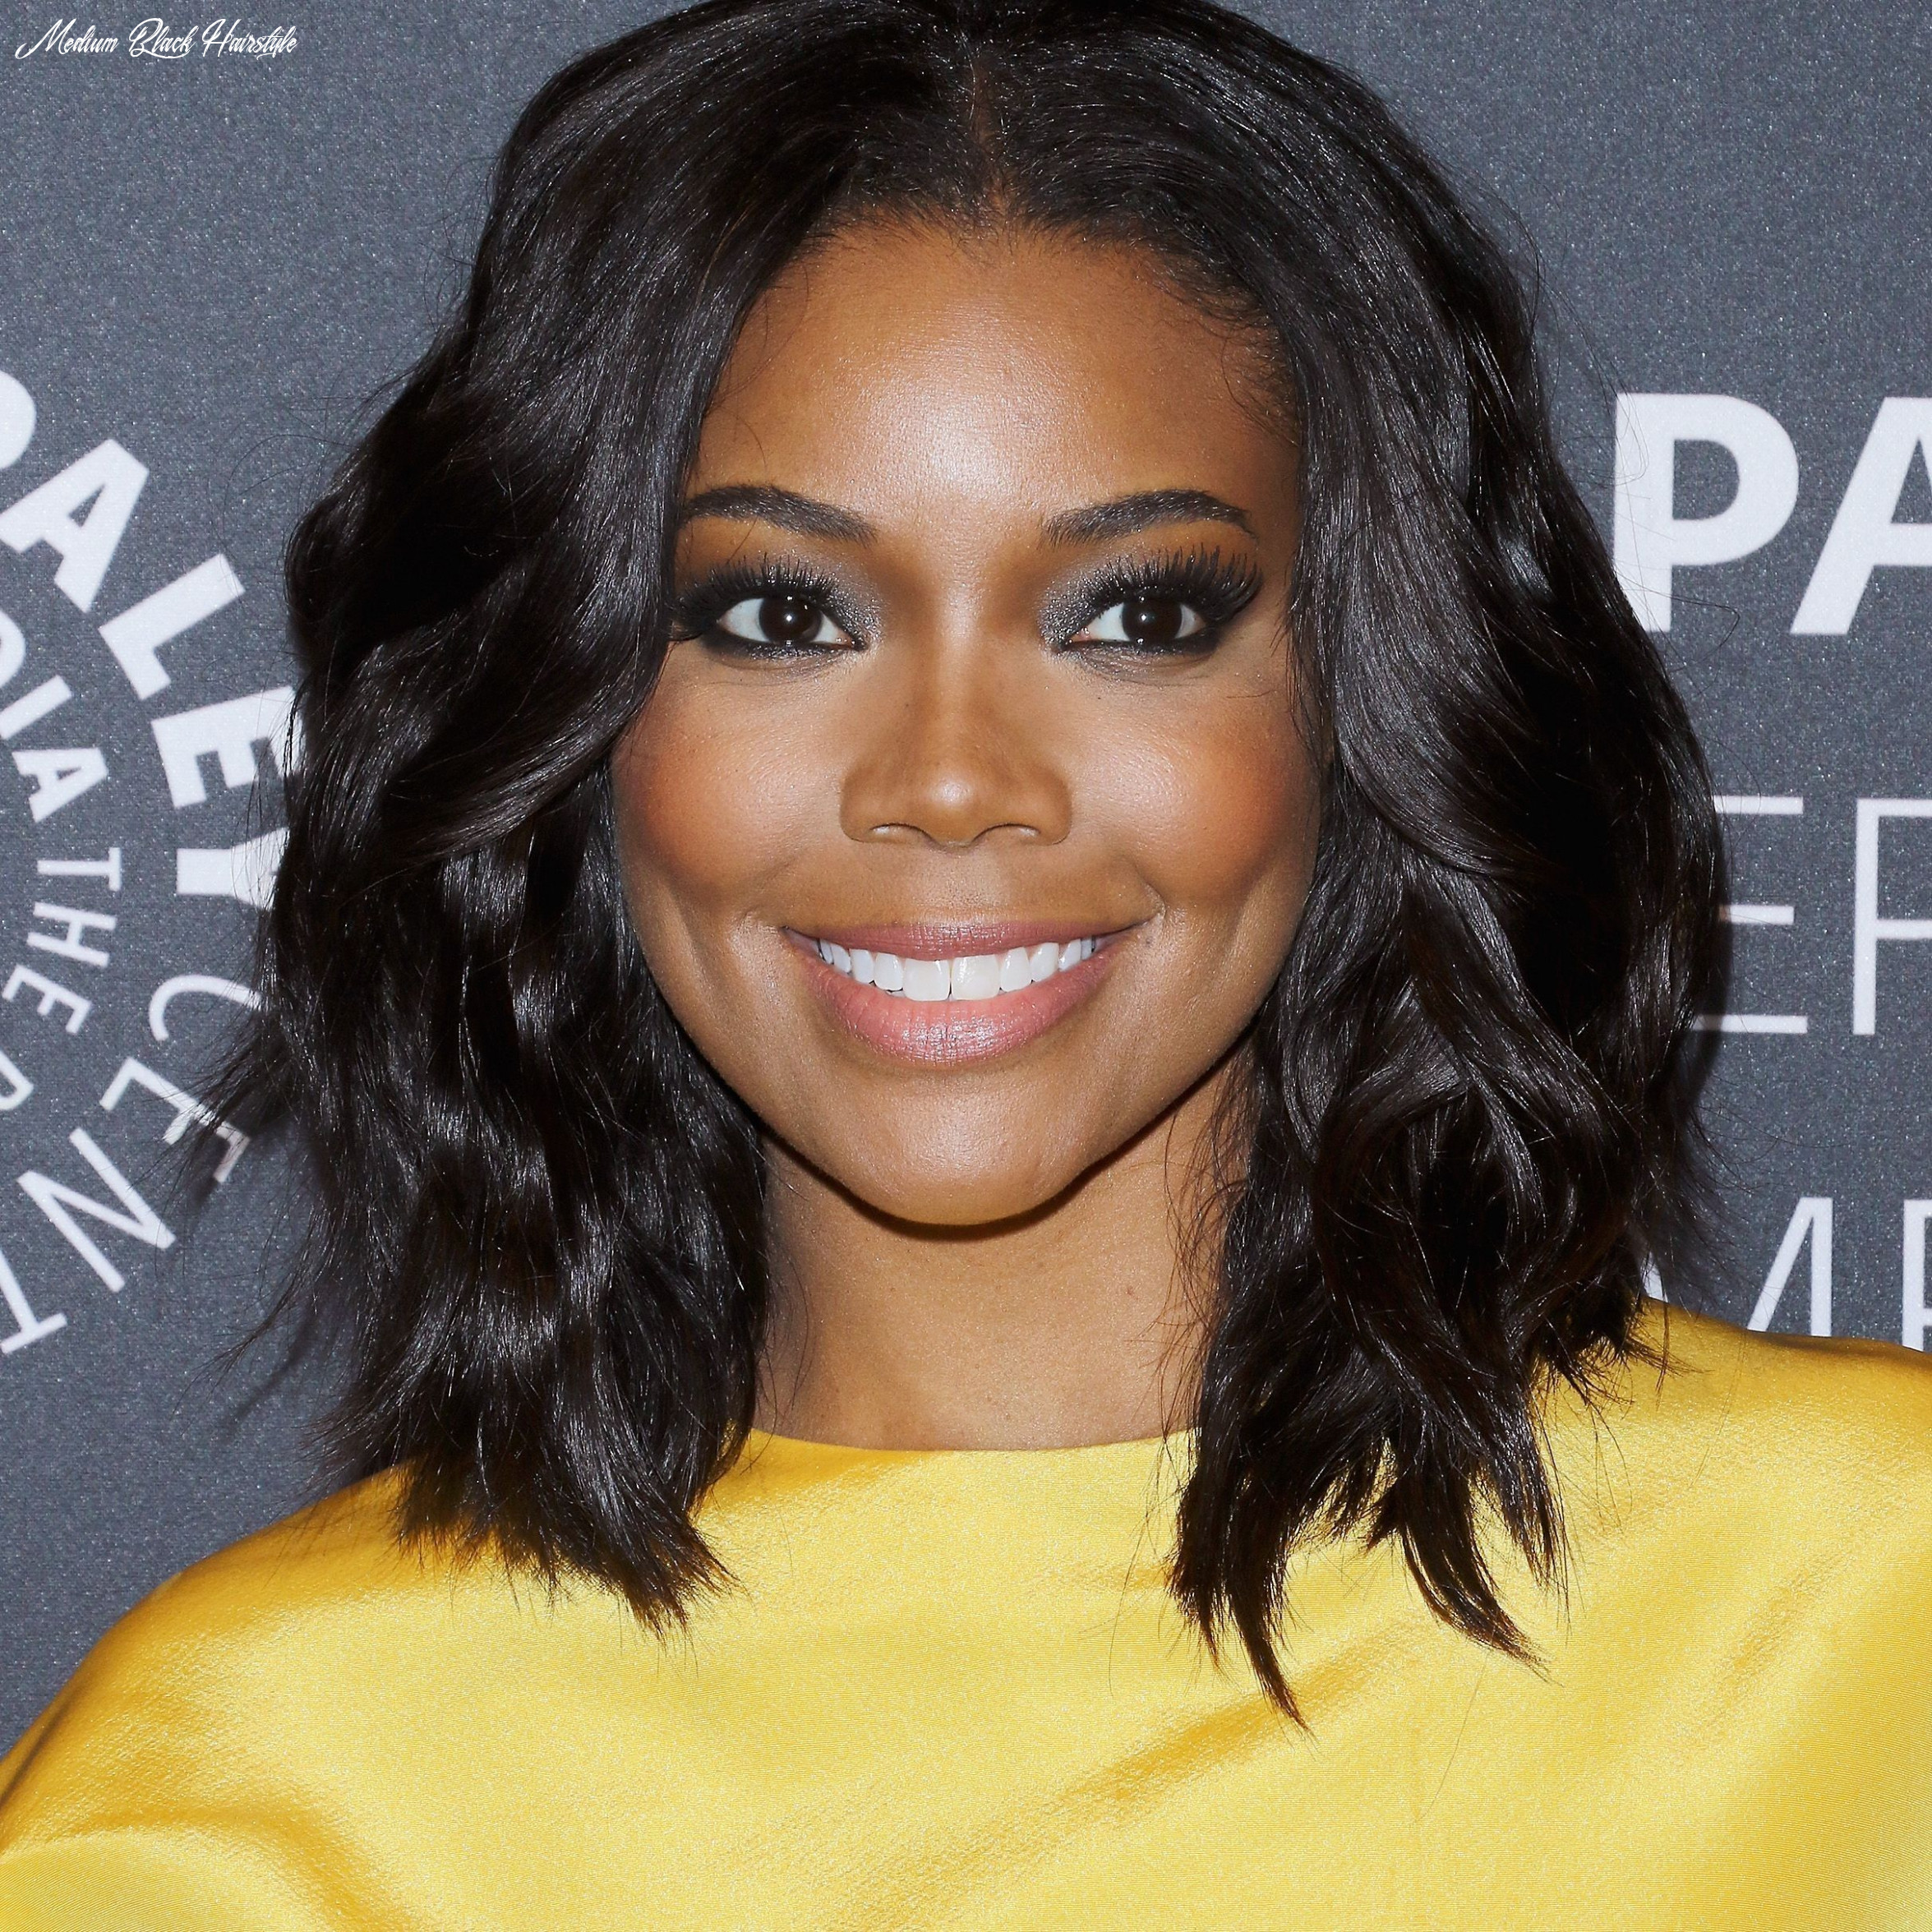 12 bob inspired hairstyle ideas for black women 12 in 12